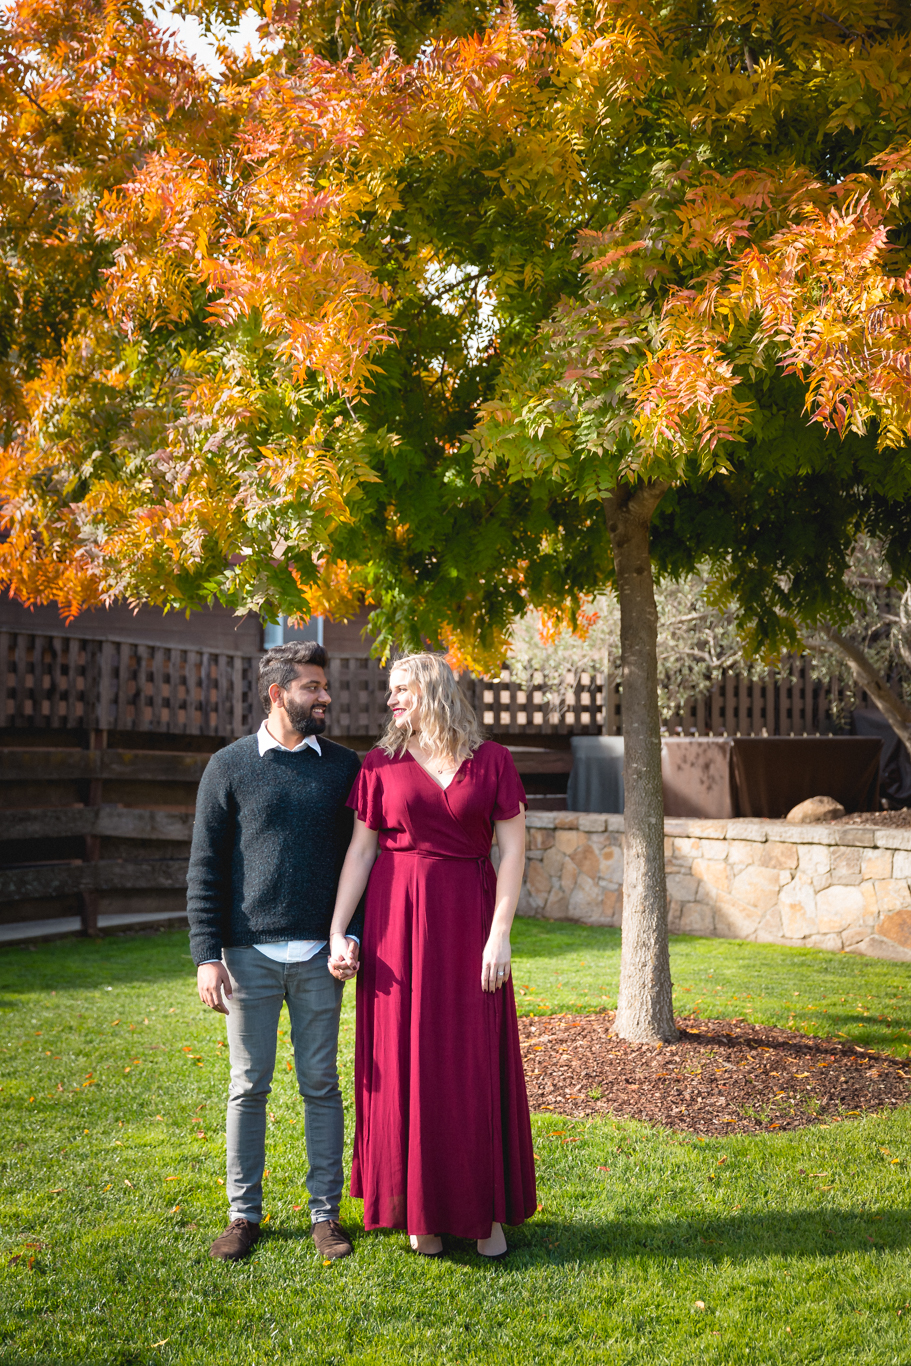 2018.12.03_Ashir-and-Emily-Engagement-Photography-@heymikefrancis-napa-valley-wedding-sacremento-california-heyfrancis-mikefrancis-7529.jpg